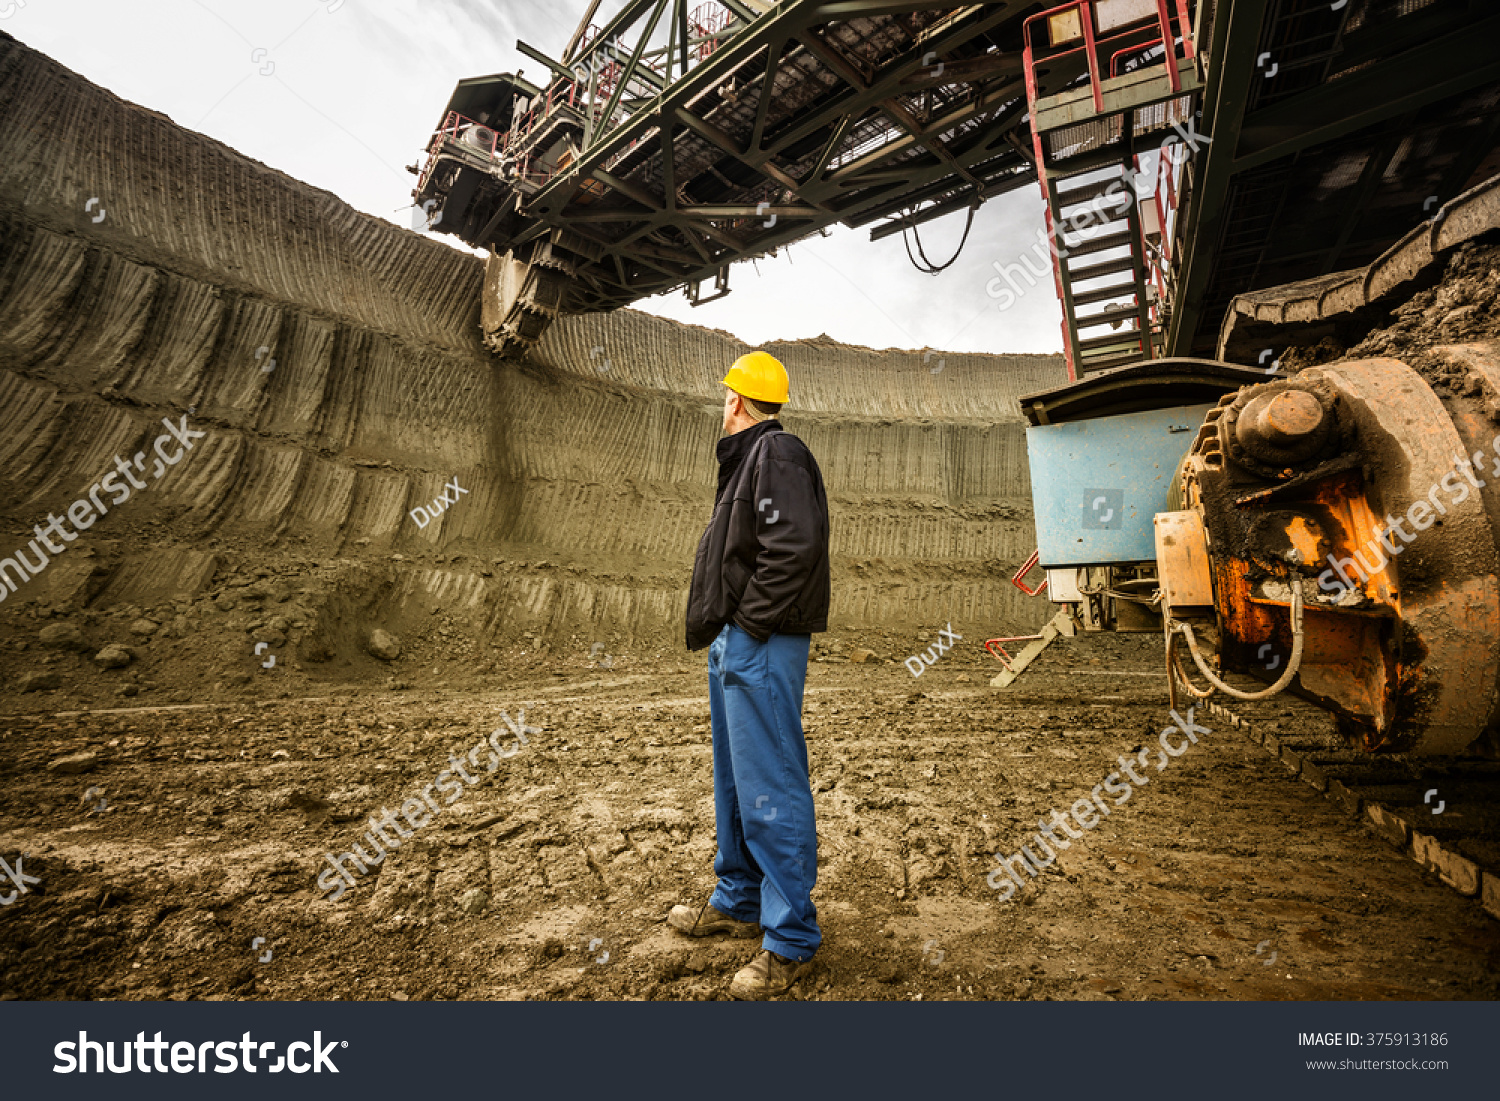 Coal mine worker with a helmet on his head standing in front of huge drill machine and looking at it Rear view